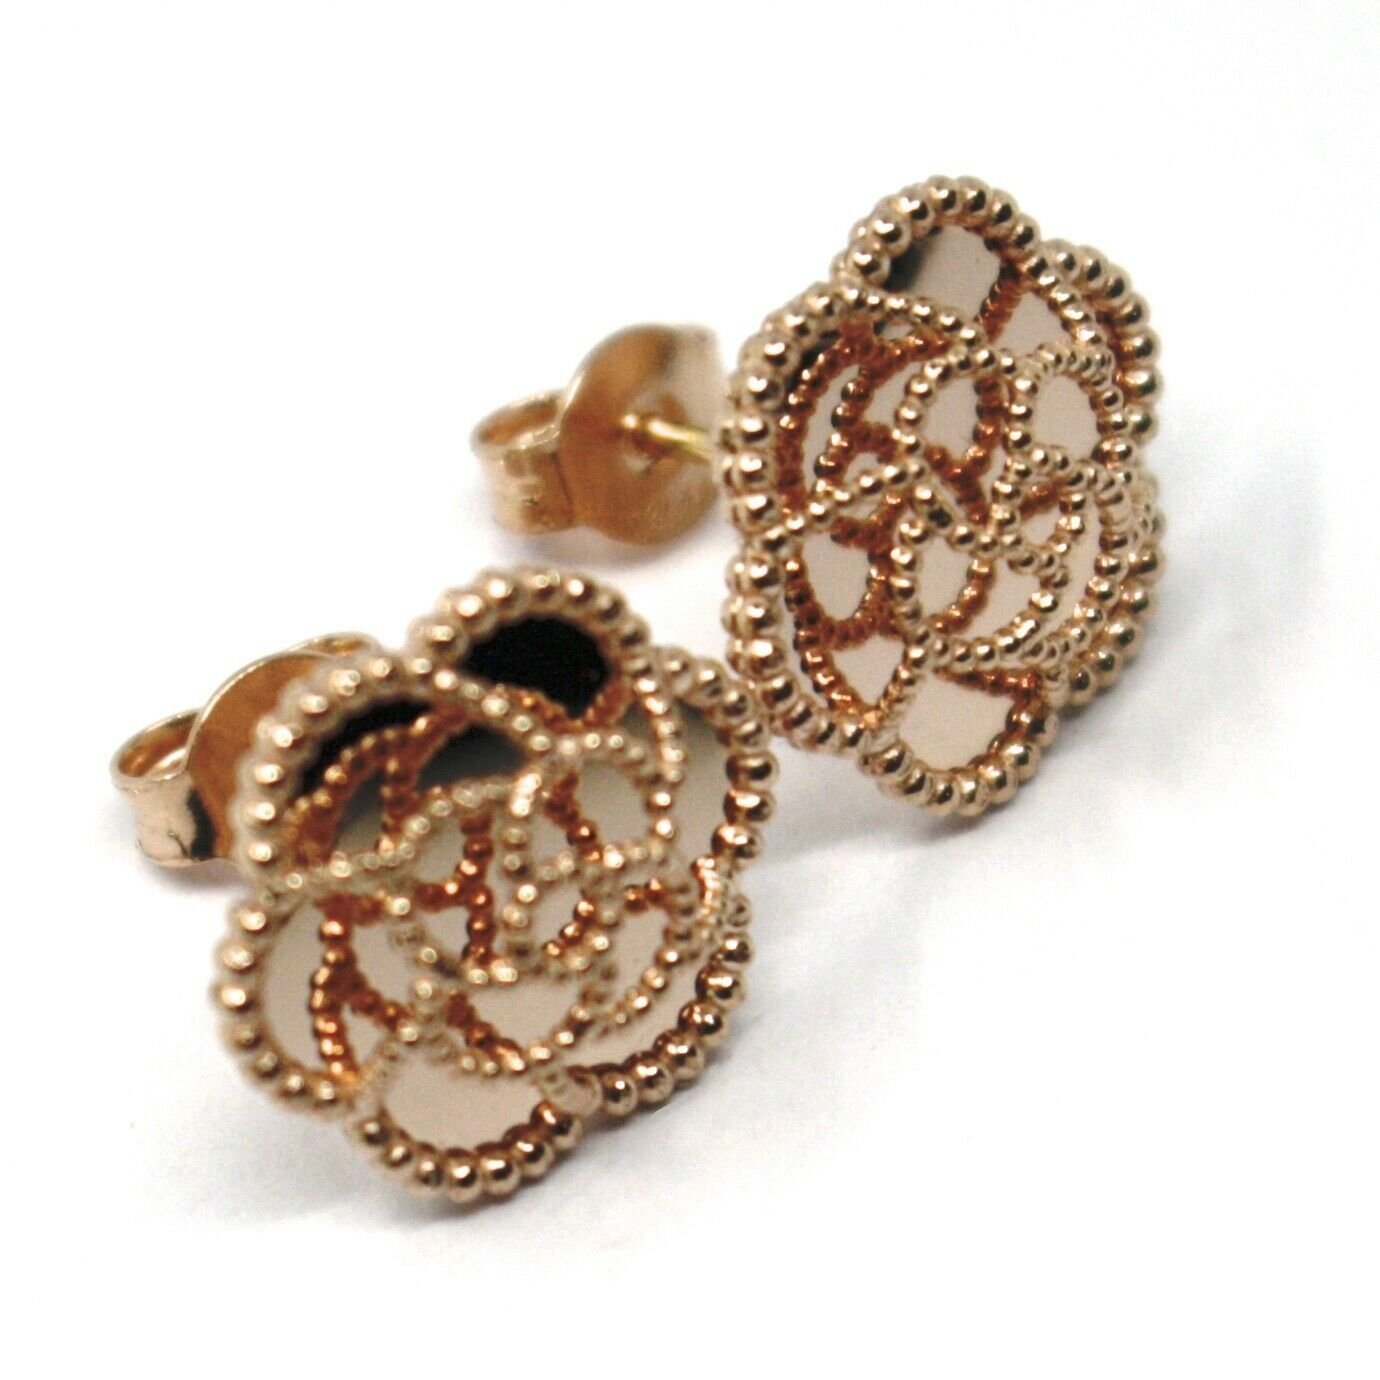 18K ROSE GOLD BOTTON FLOWER DAISY EARRINGS 14 MM, DOUBLE LAYER WORKED MIRROR